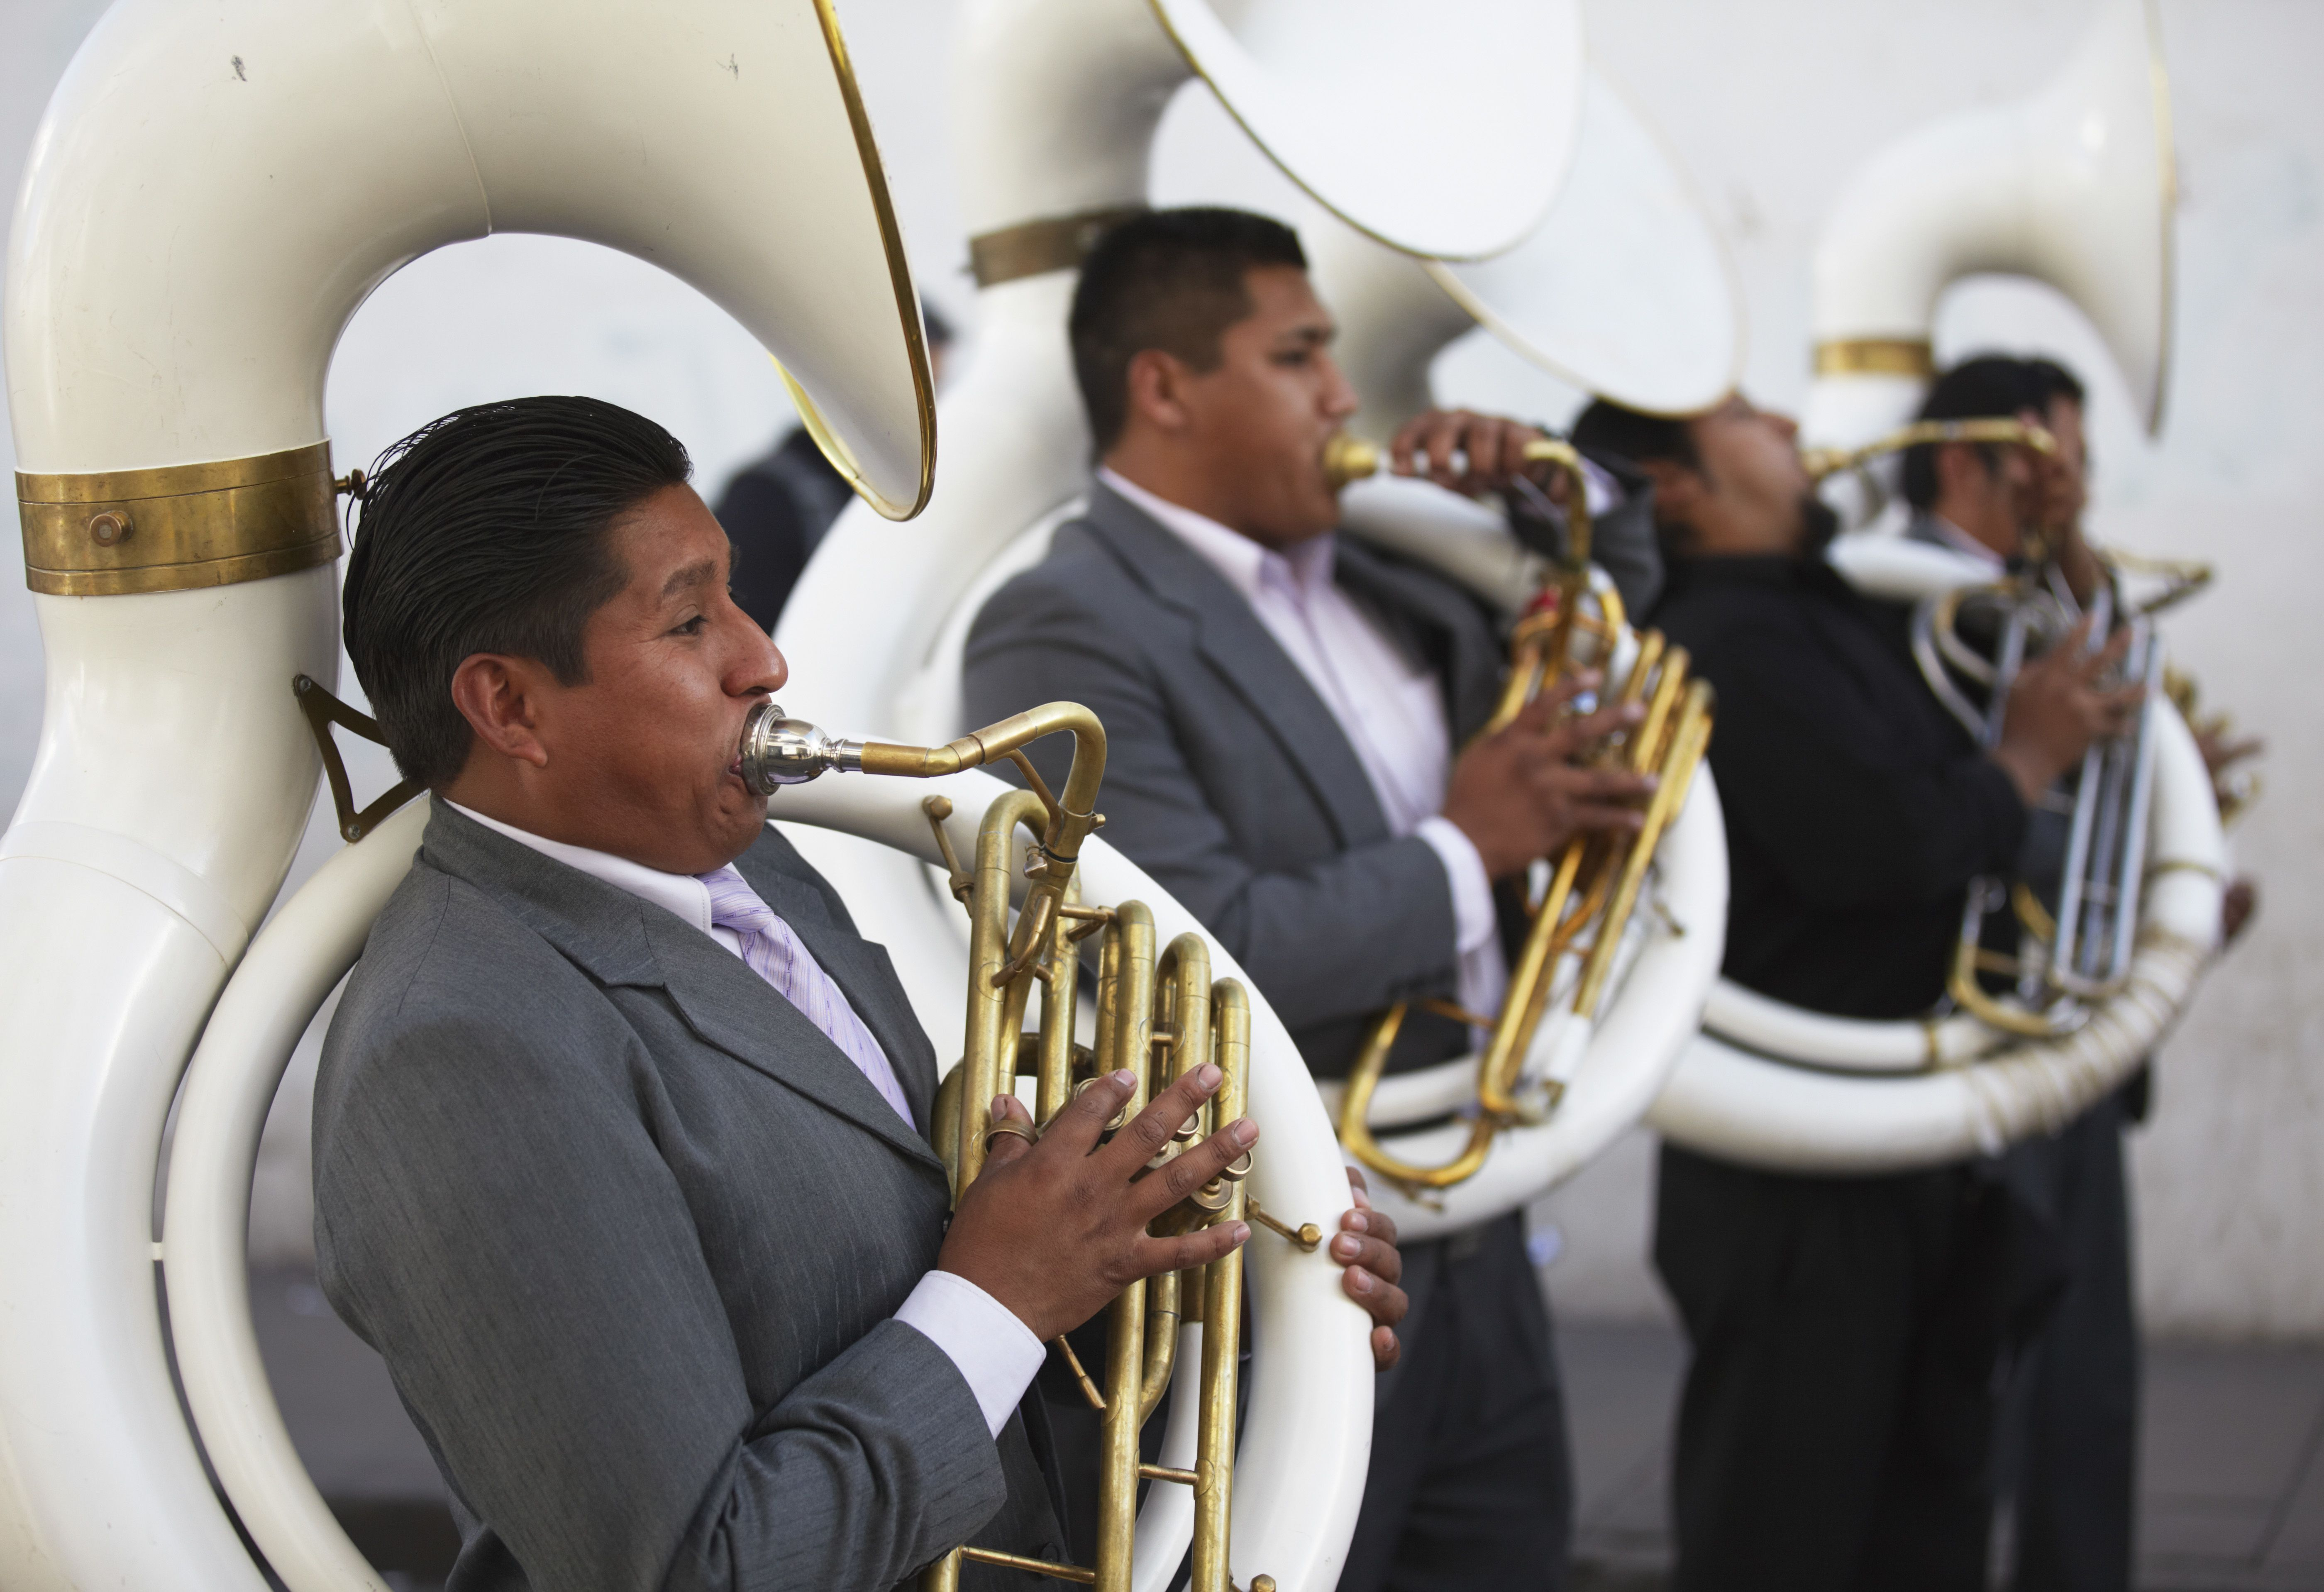 Men playing tubas in festival, Sucre (UNESCO World Heritage Site), Bolivia